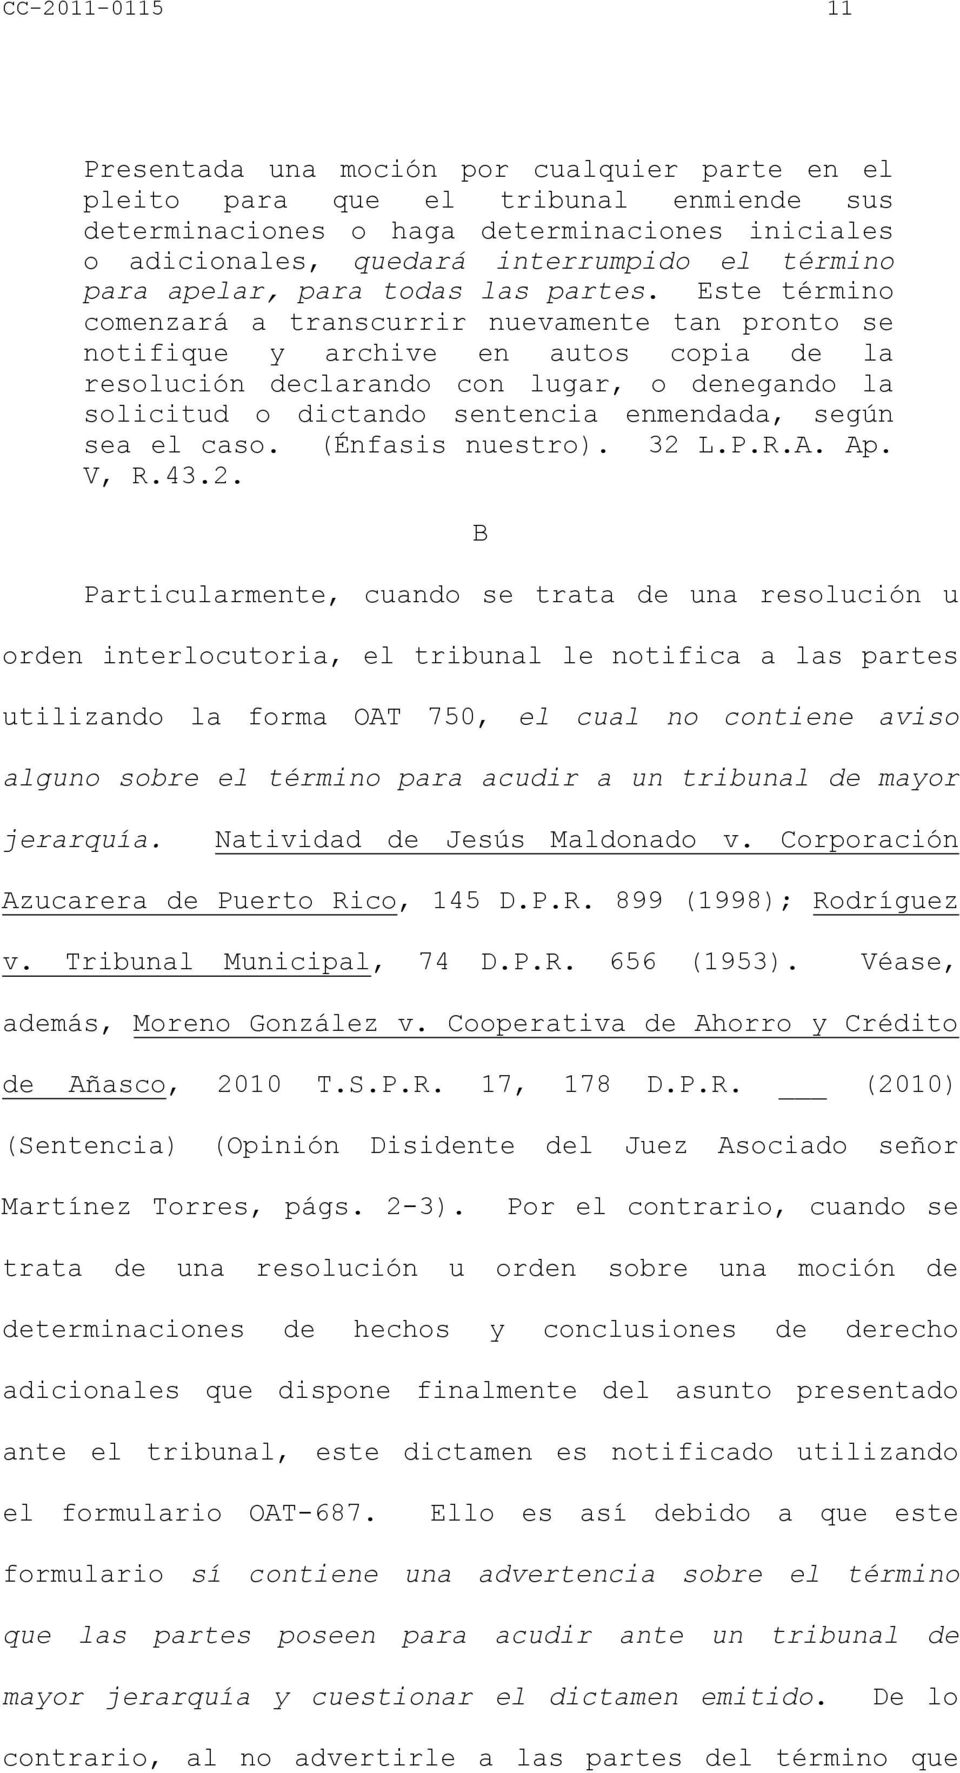 Este término comenzará a transcurrir nuevamente tan pronto se notifique y archive en autos copia de la resolución declarando con lugar, o denegando la solicitud o dictando sentencia enmendada, según